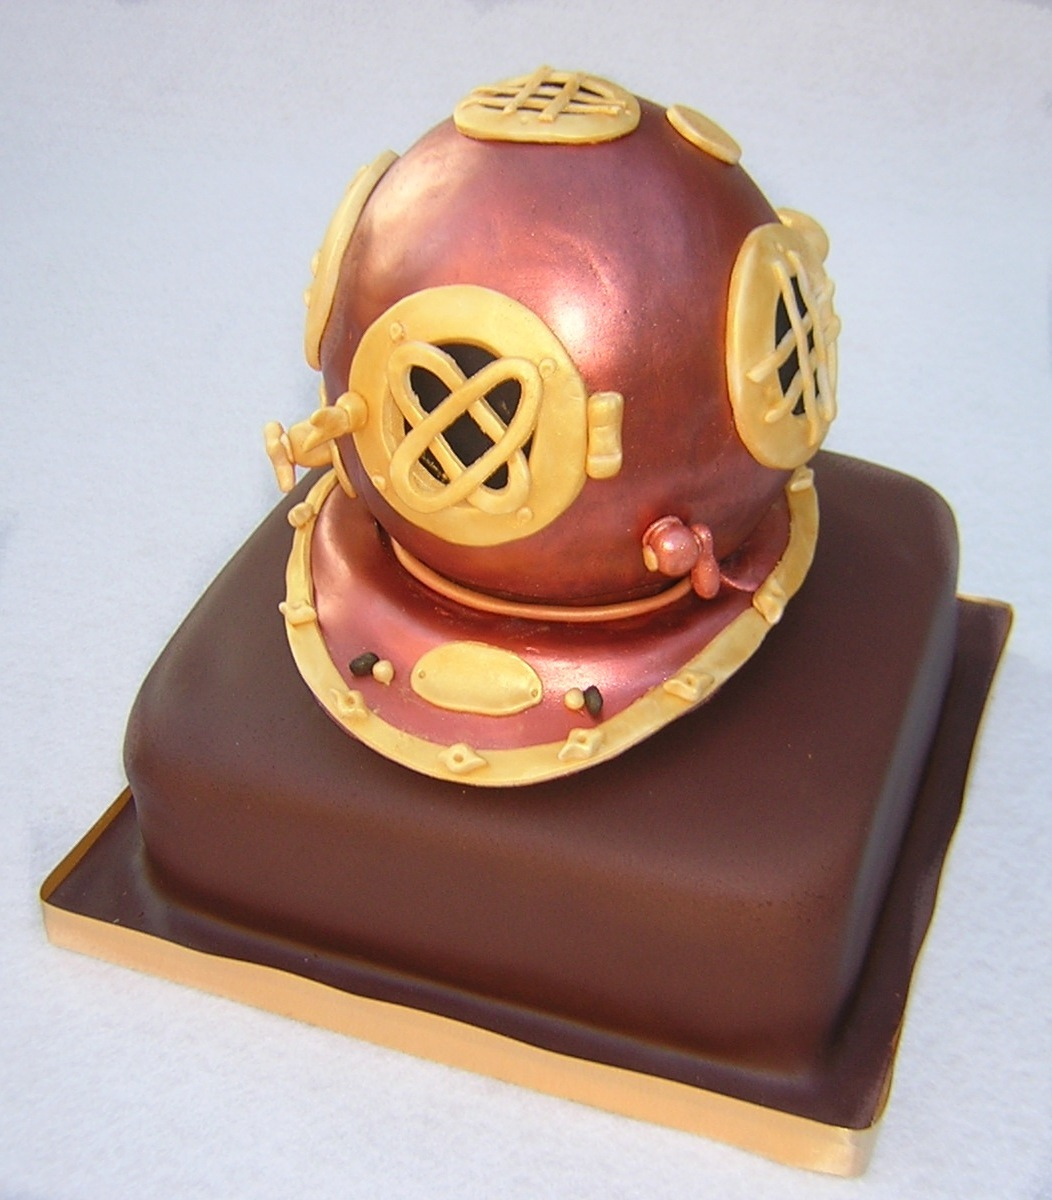 Julie's Diving Helmet Cake